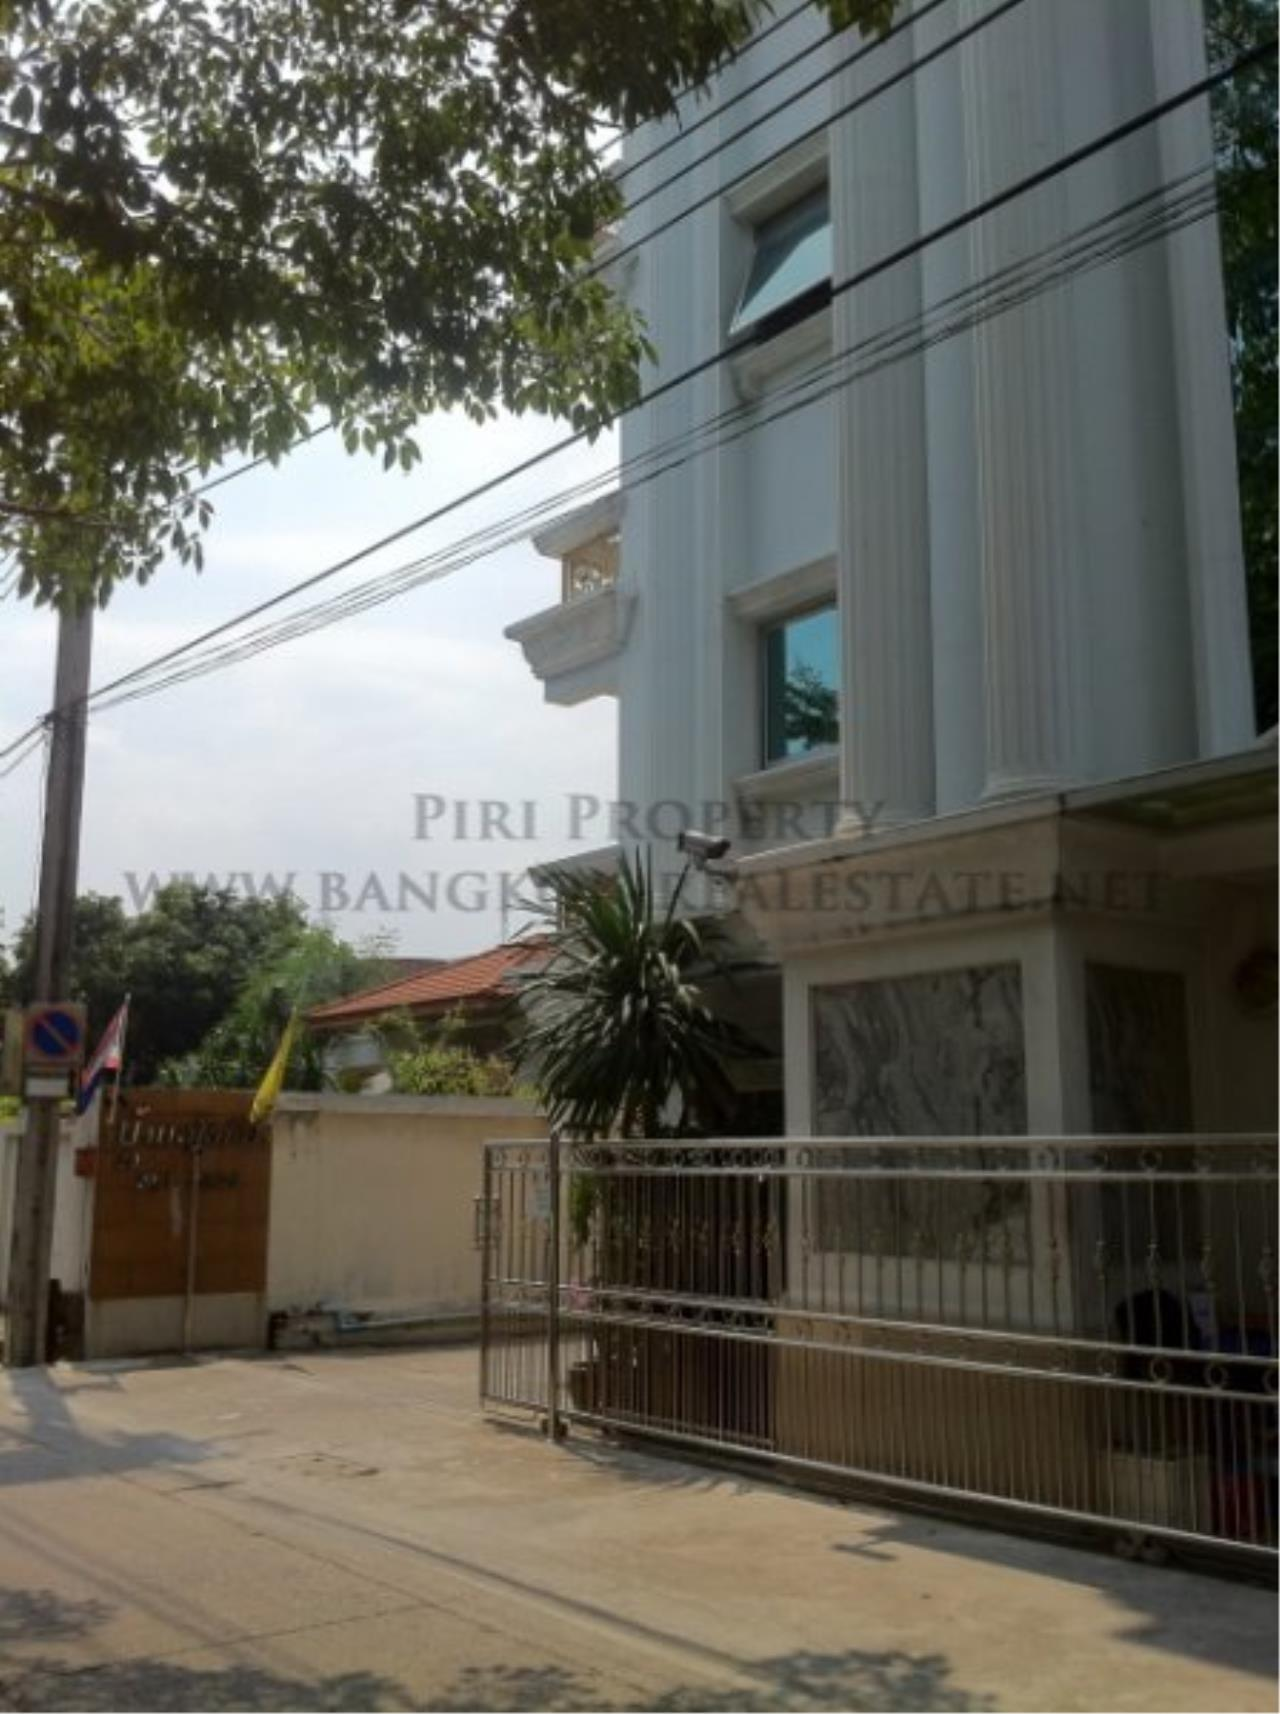 Piri Property Agency's Baan Sukhuthai - Spacious 1 Bed Condo for Sale - 65 SQM 4